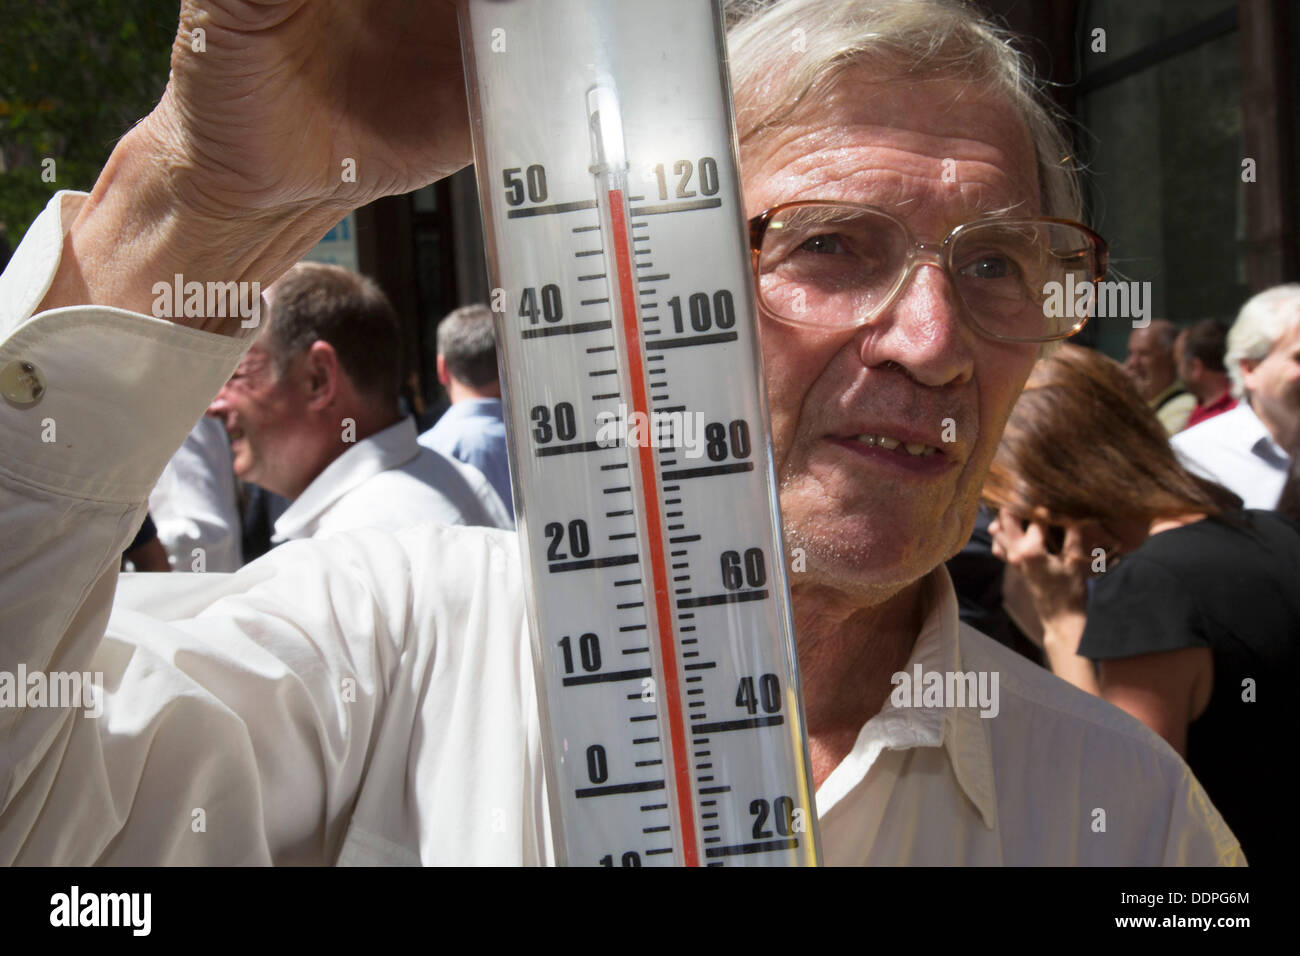 "London, UK. Thursday 5th September 2013. Man with a thermometer shows the temperature exceeding 50 degrees C, beyond the limit of his guage. Urgent action in planned to ""cover up"" the Walkie Talkie skyscraper in the City after sunlight reflected from the building melted a car on the streets below. Temperatures have been measured in excess of 50 degrees C, and as much as 70 degrees at it's peak. Credit:  Michael Kemp/Alamy Live News - Stock Image"